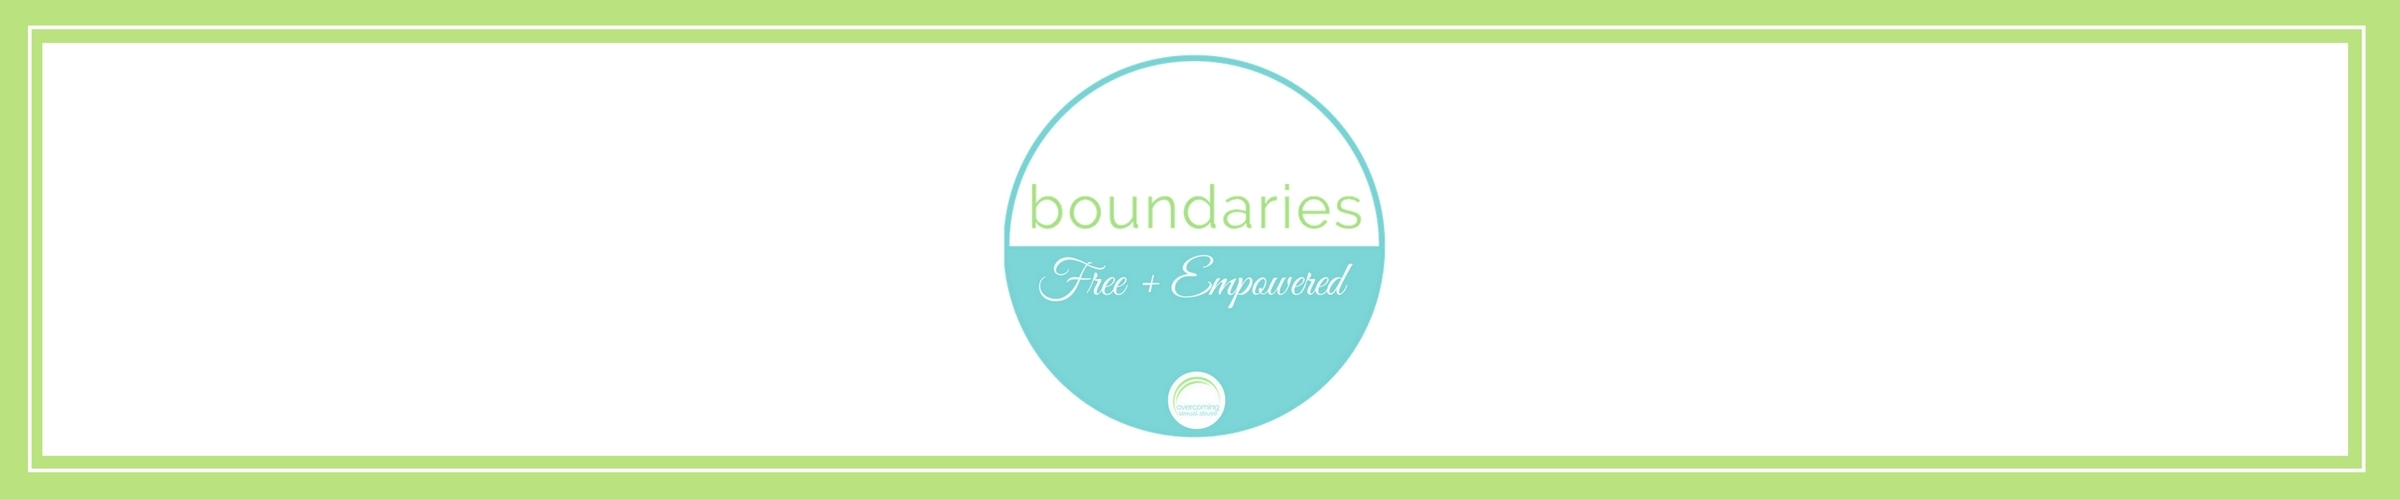 Cover boundaries landing page header 3